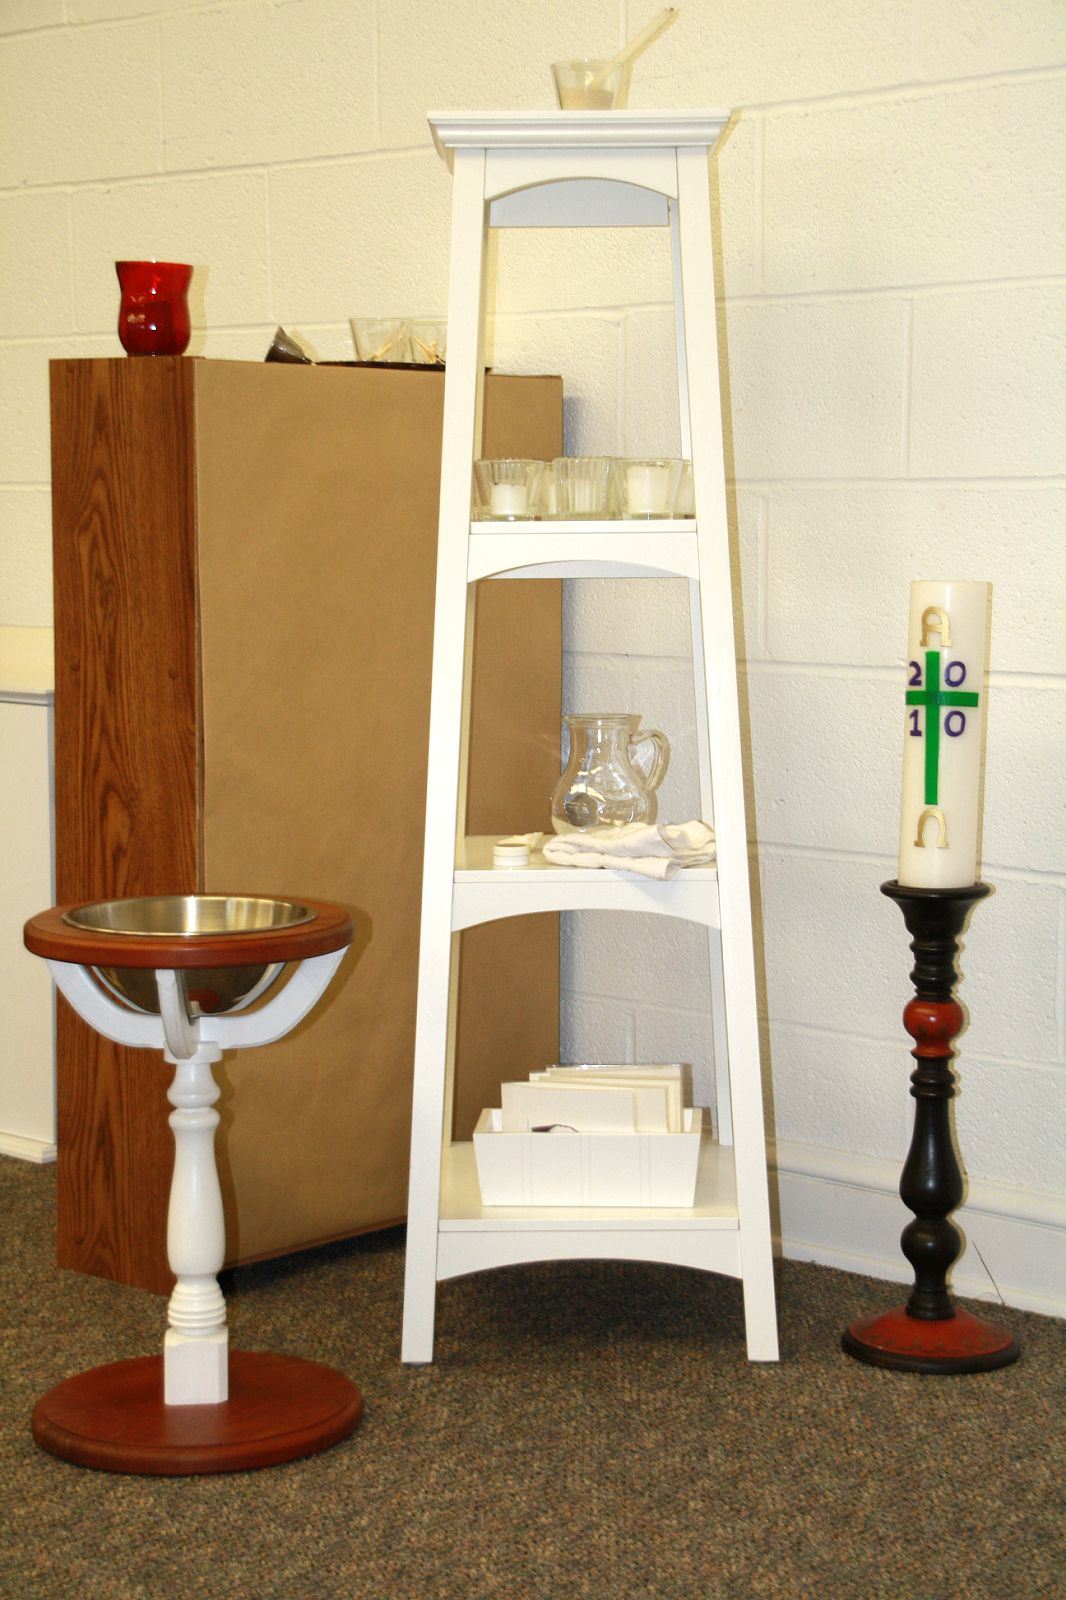 How To Give A Sacristy Tour